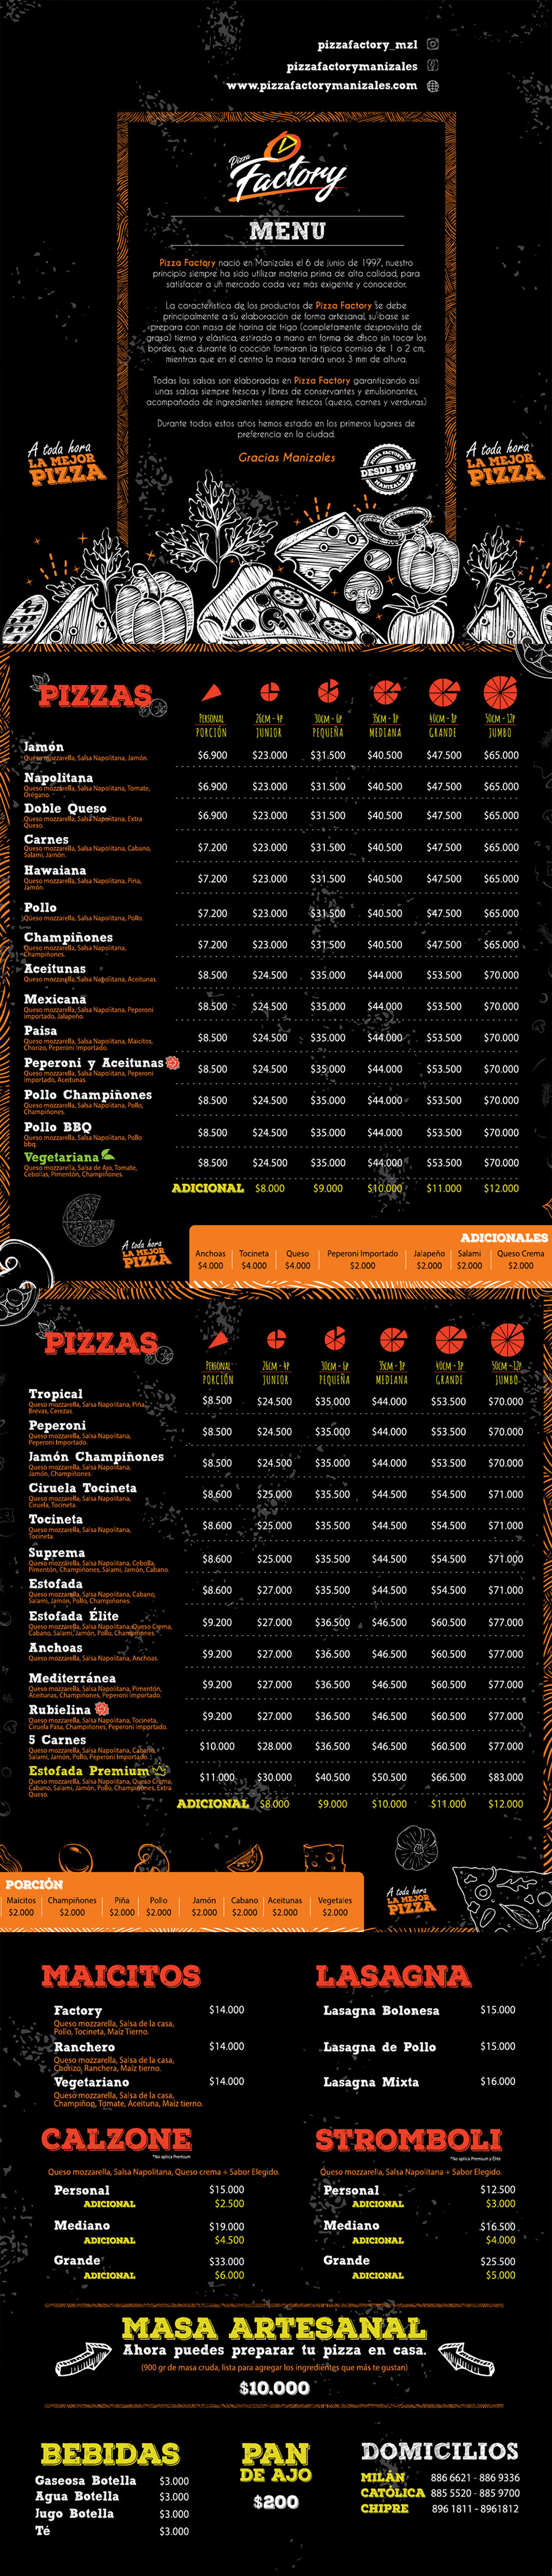 pizza factory manizales